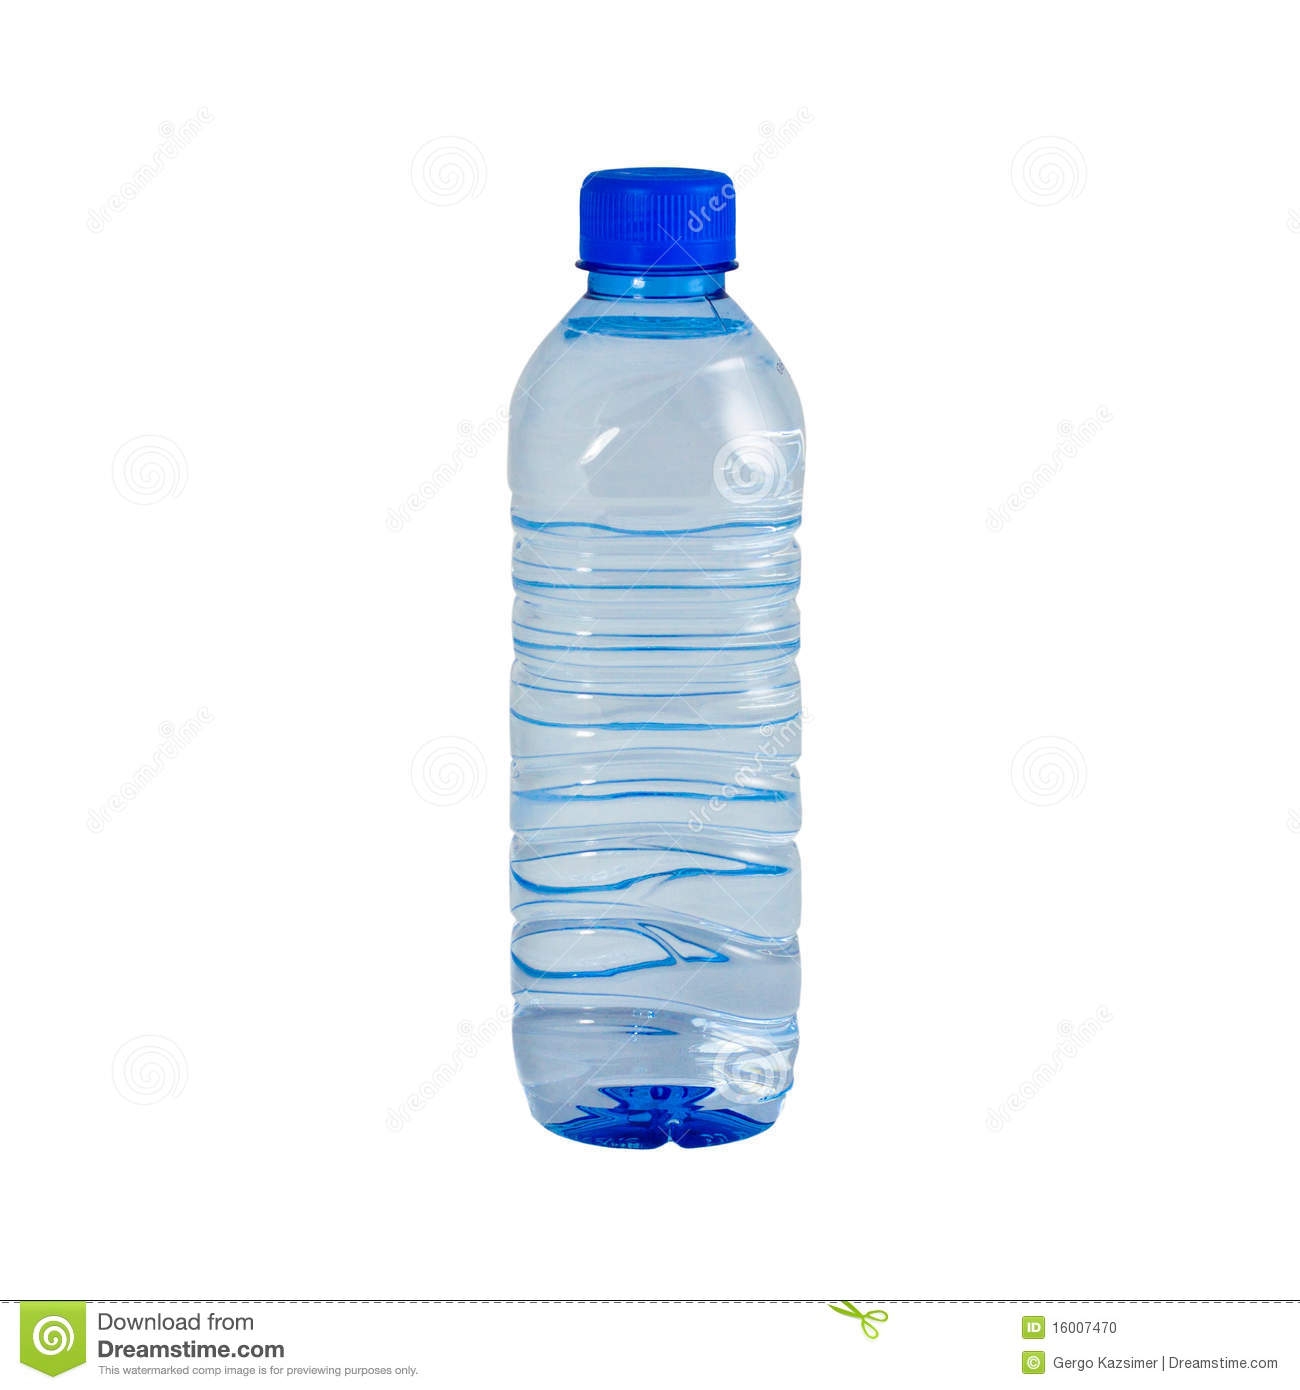 Plastic water bottle clipart picture download 48+ Water Bottle Clip Art | ClipartLook picture download